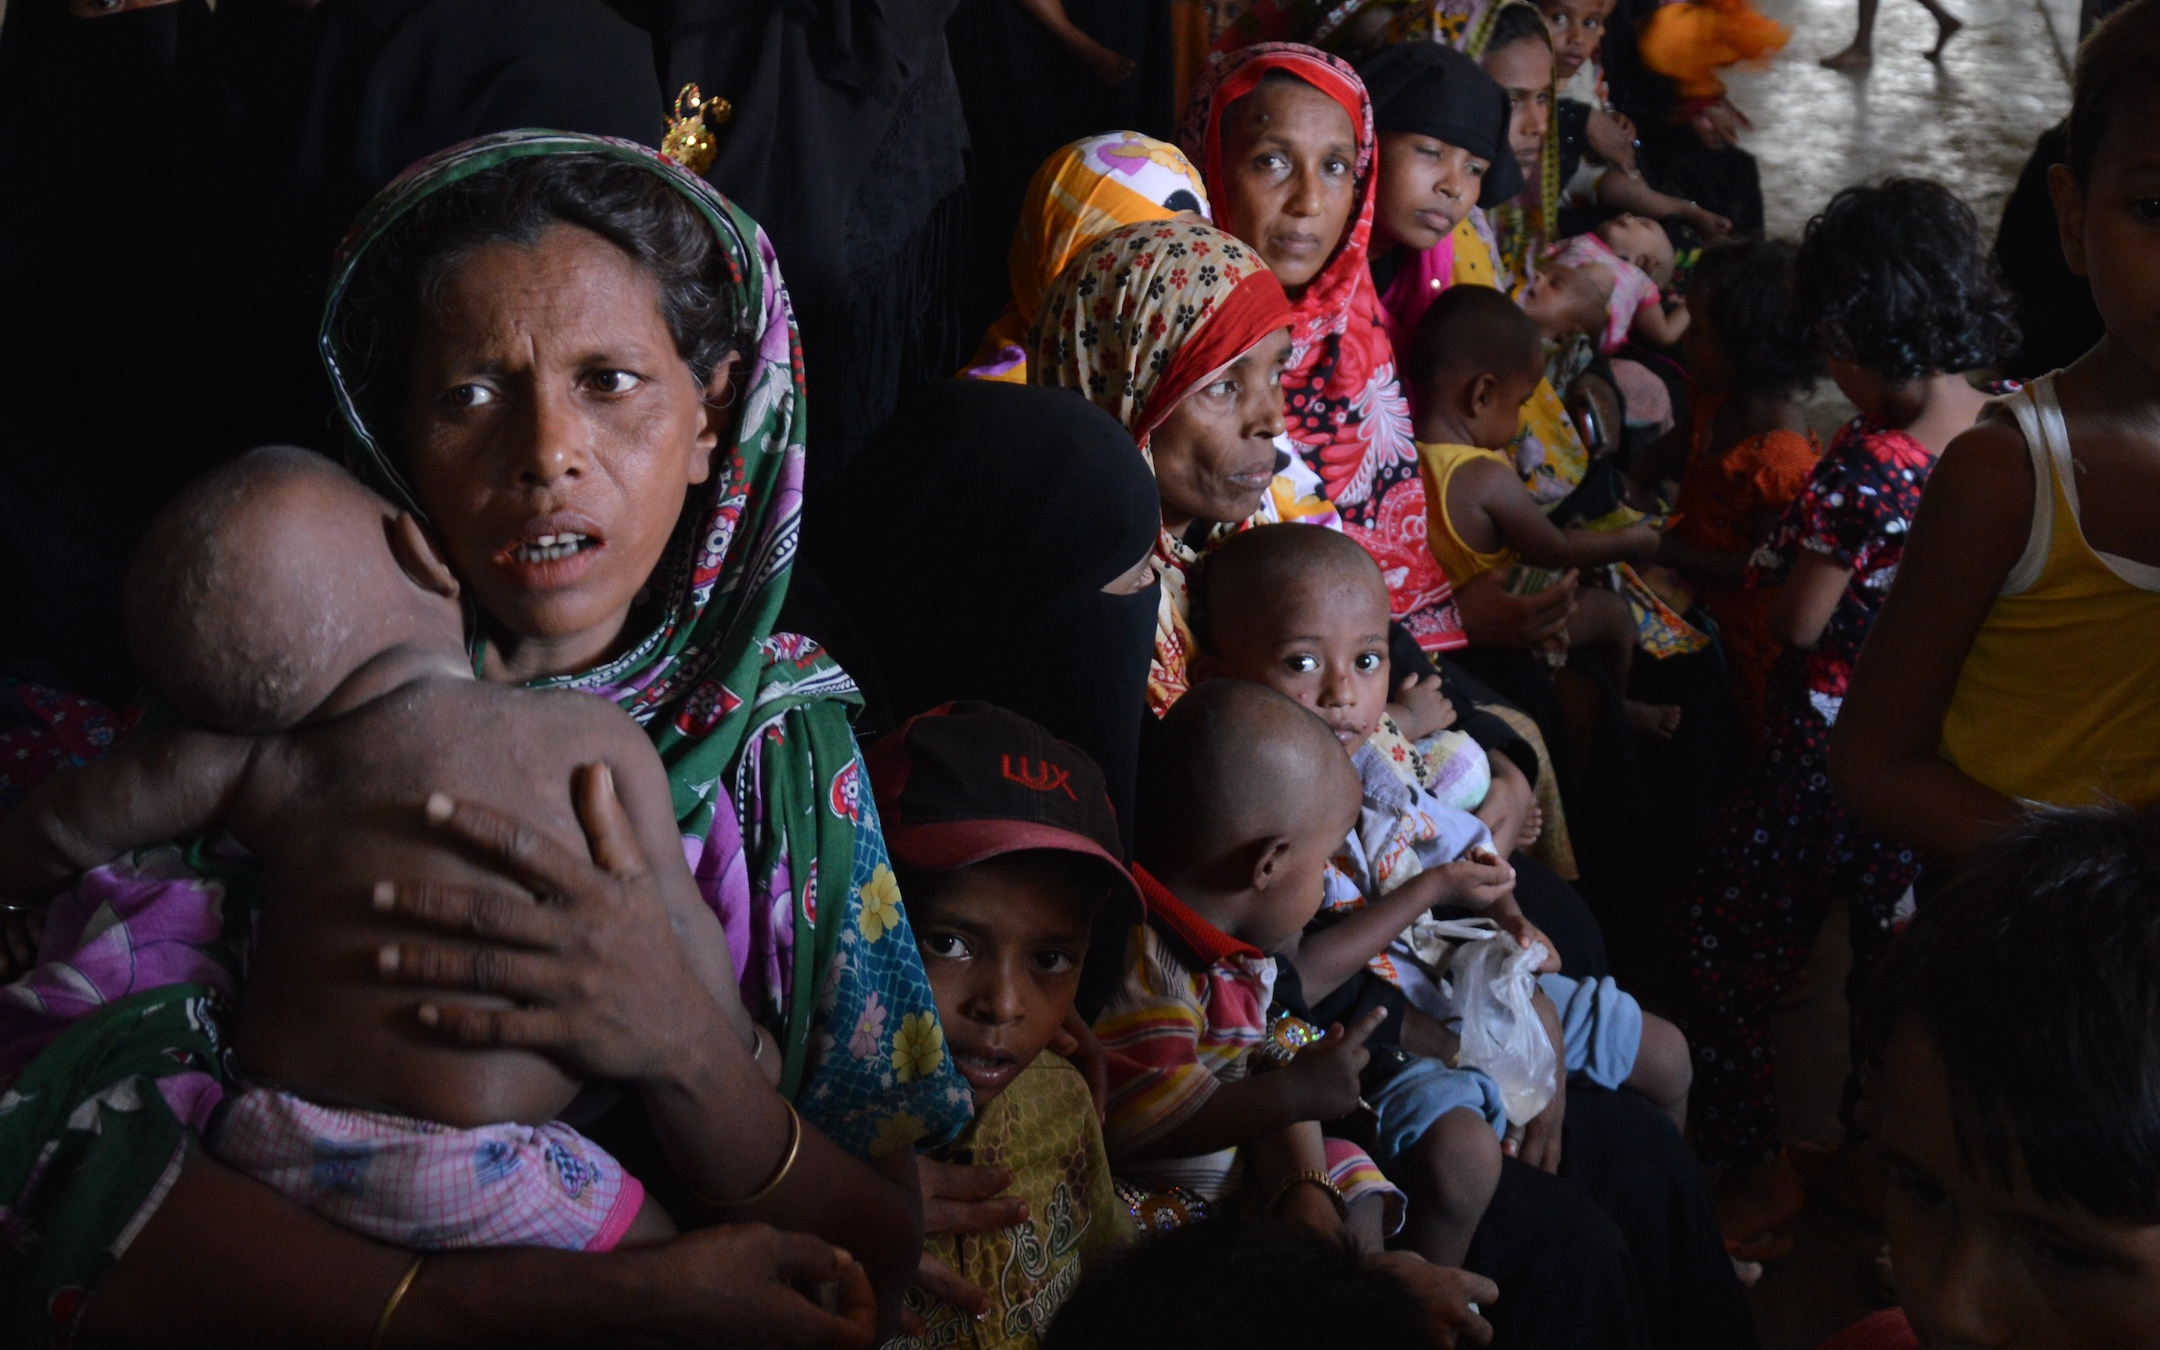 Rohingya refugees in Bangladesh. European Commission DG ECHO, CC BY-NC-ND 2.0